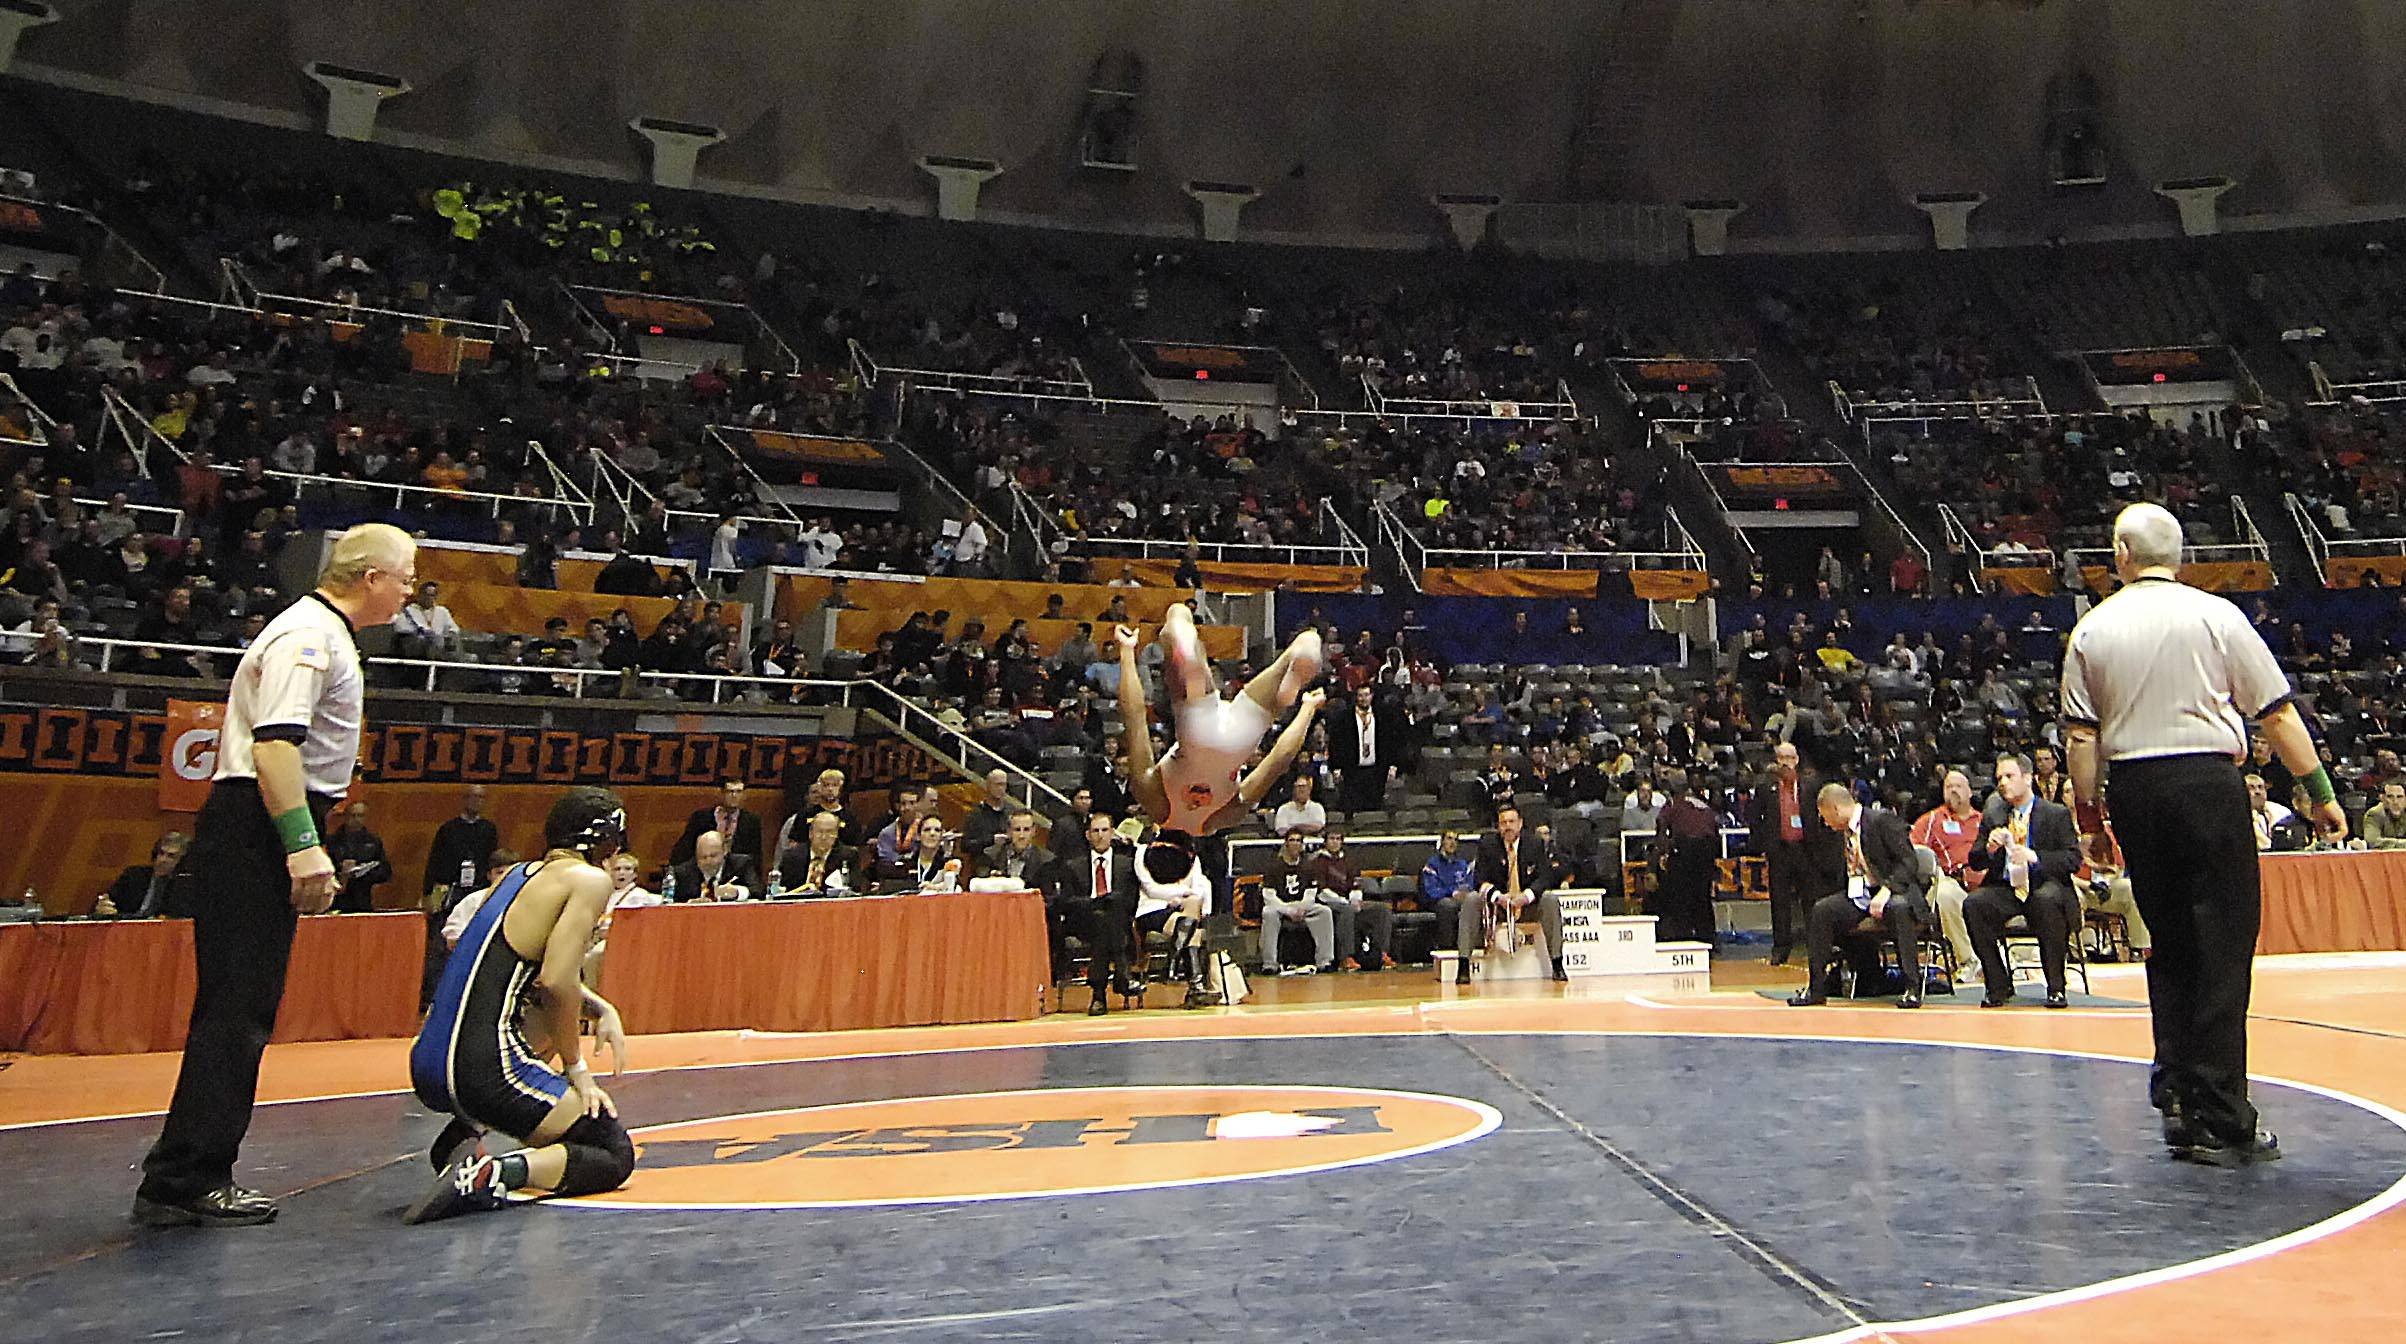 Emery Parker of Gurnee Warren Township High School watches as Kamal Bey of Oak Park River Forest High School does a back flip after winning Saturday in the 160-pound weight class championship match of the wrestling IHSA Class 3A state tournament at State Farm Center in Champaign.